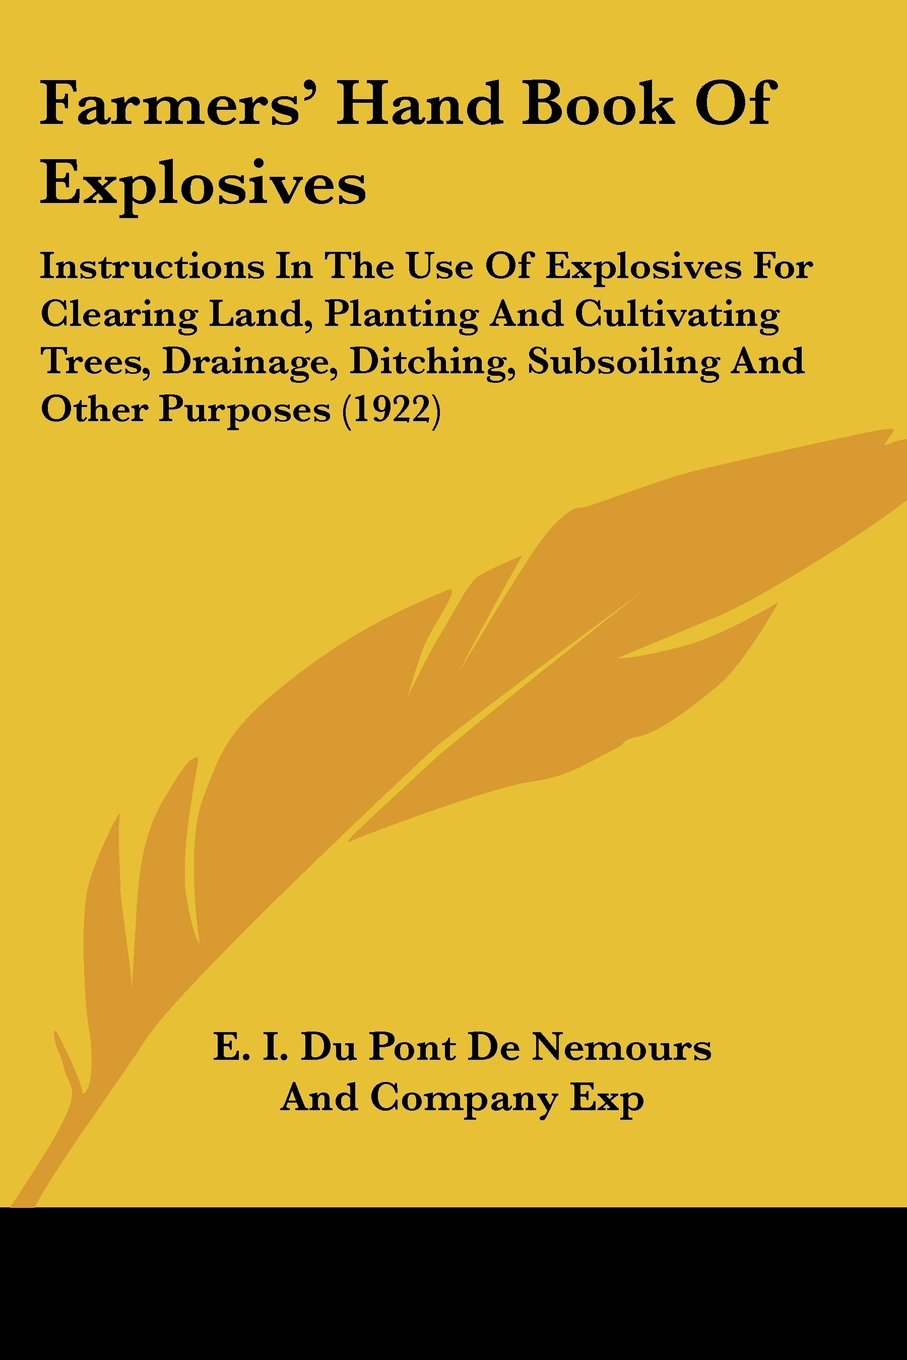 Farmers' Hand Book Of Explosives: Instructions In The Use Of Explosives For Clearing Land, Planting And Cultivating Trees, Drainage, Ditching, Subsoiling And Other Purposes (1922) pdf